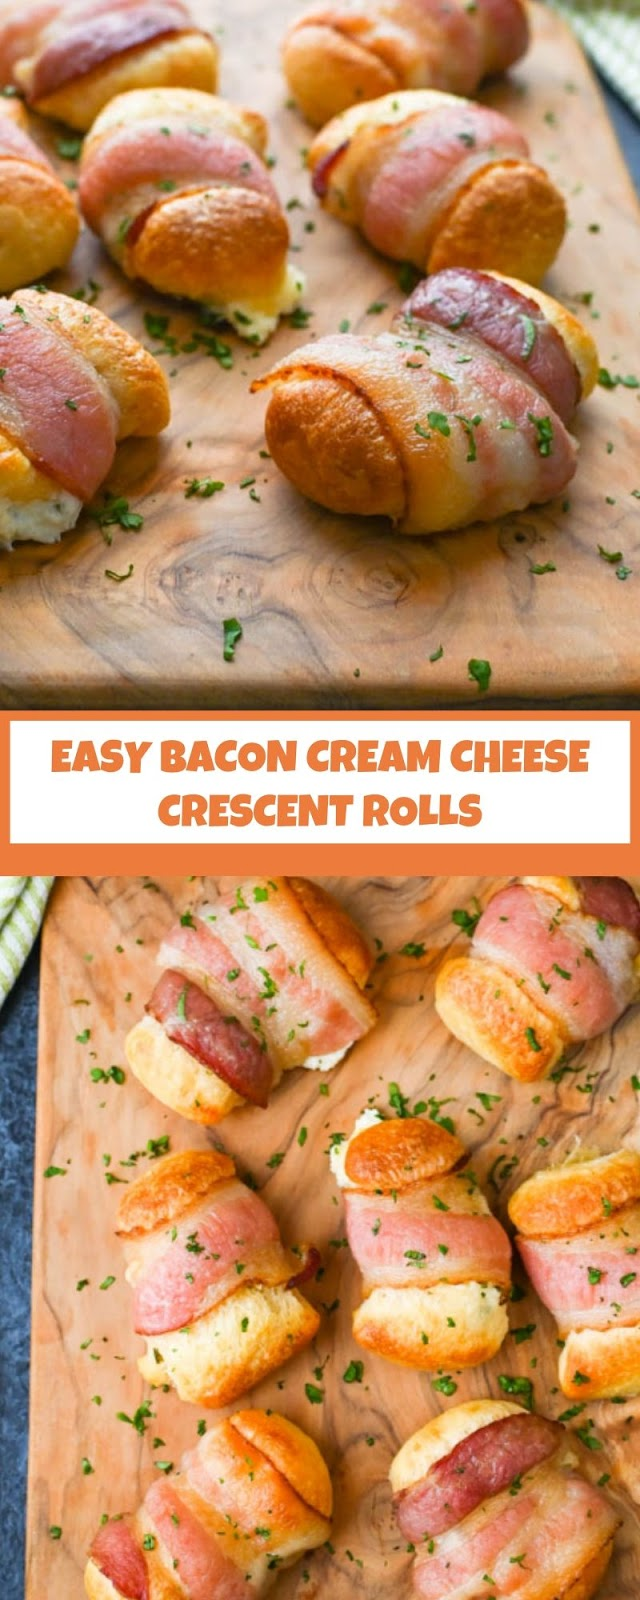 EASY BACON CREAM CHEESE CRESCENT ROLLS